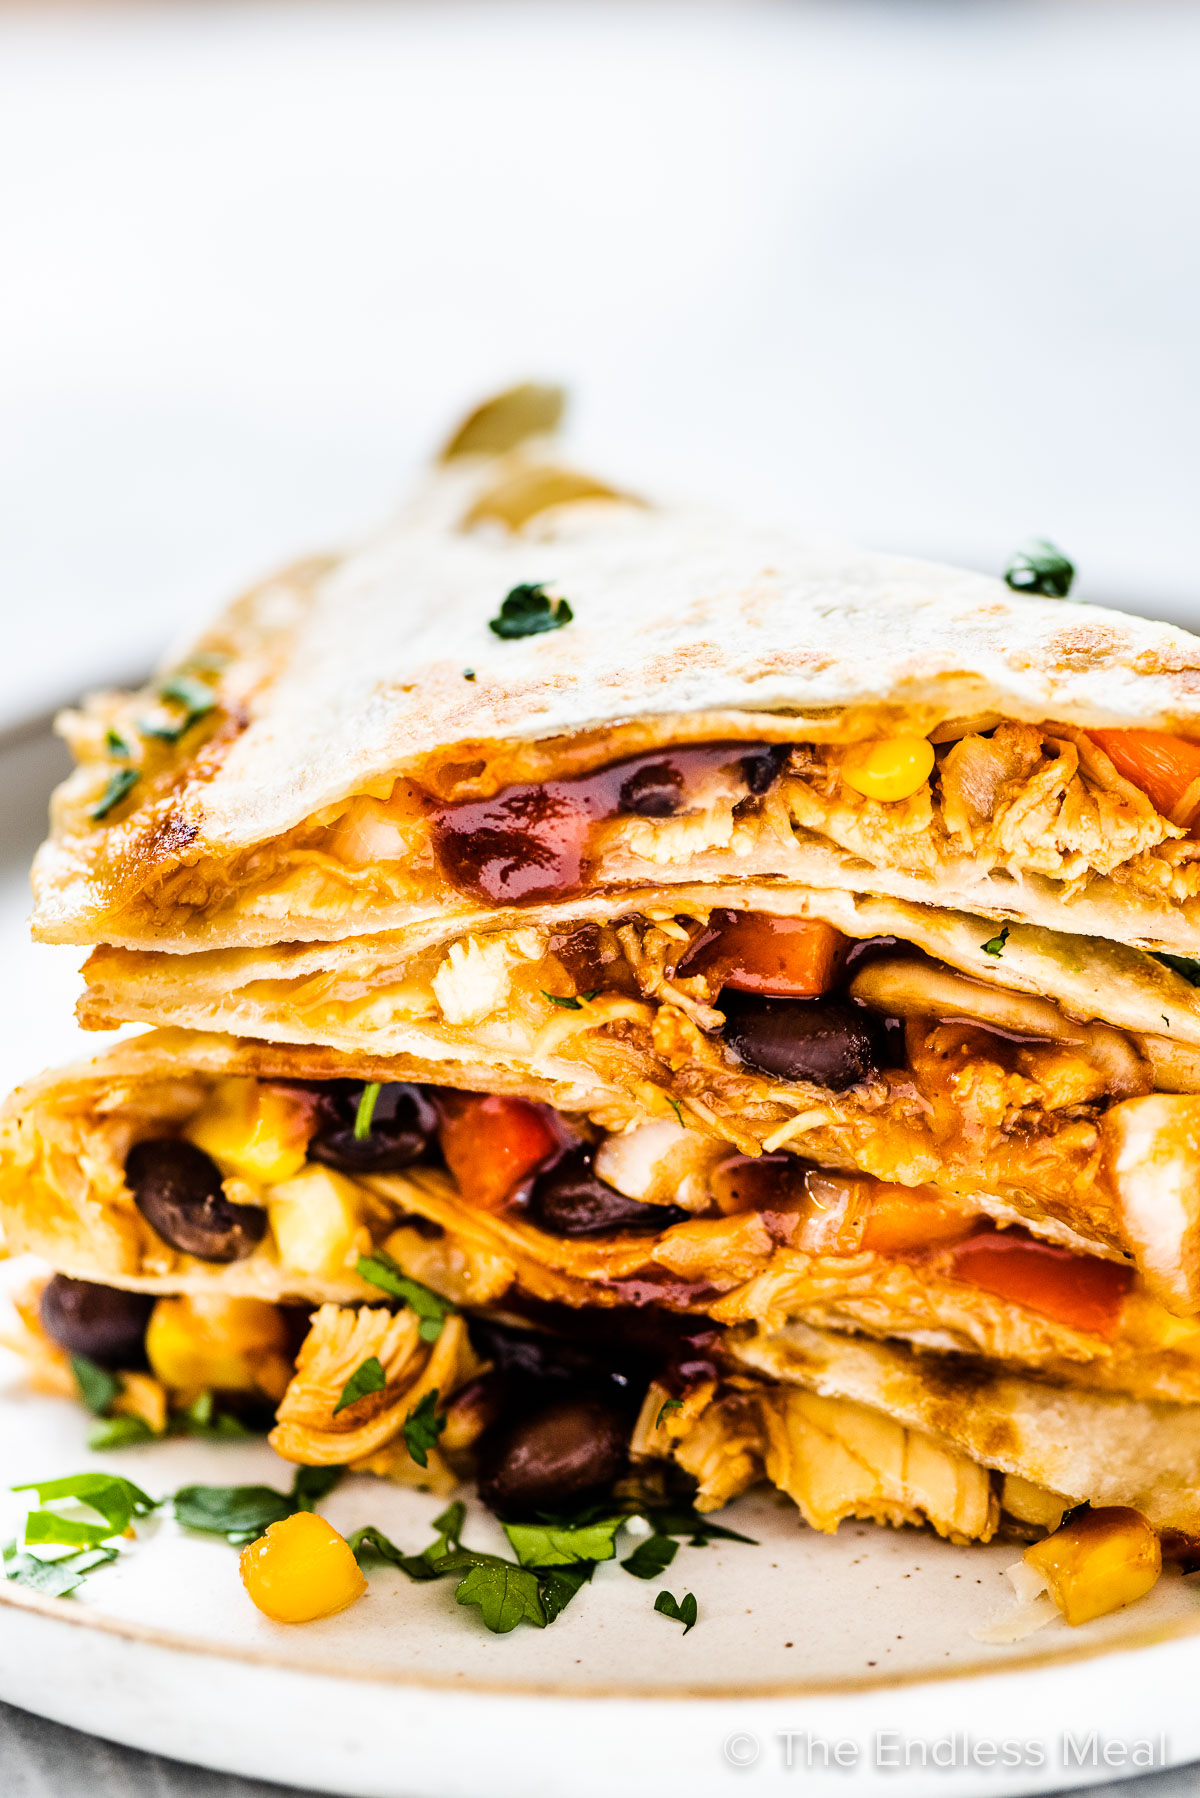 A stack of chicken quesadillas on a plate.